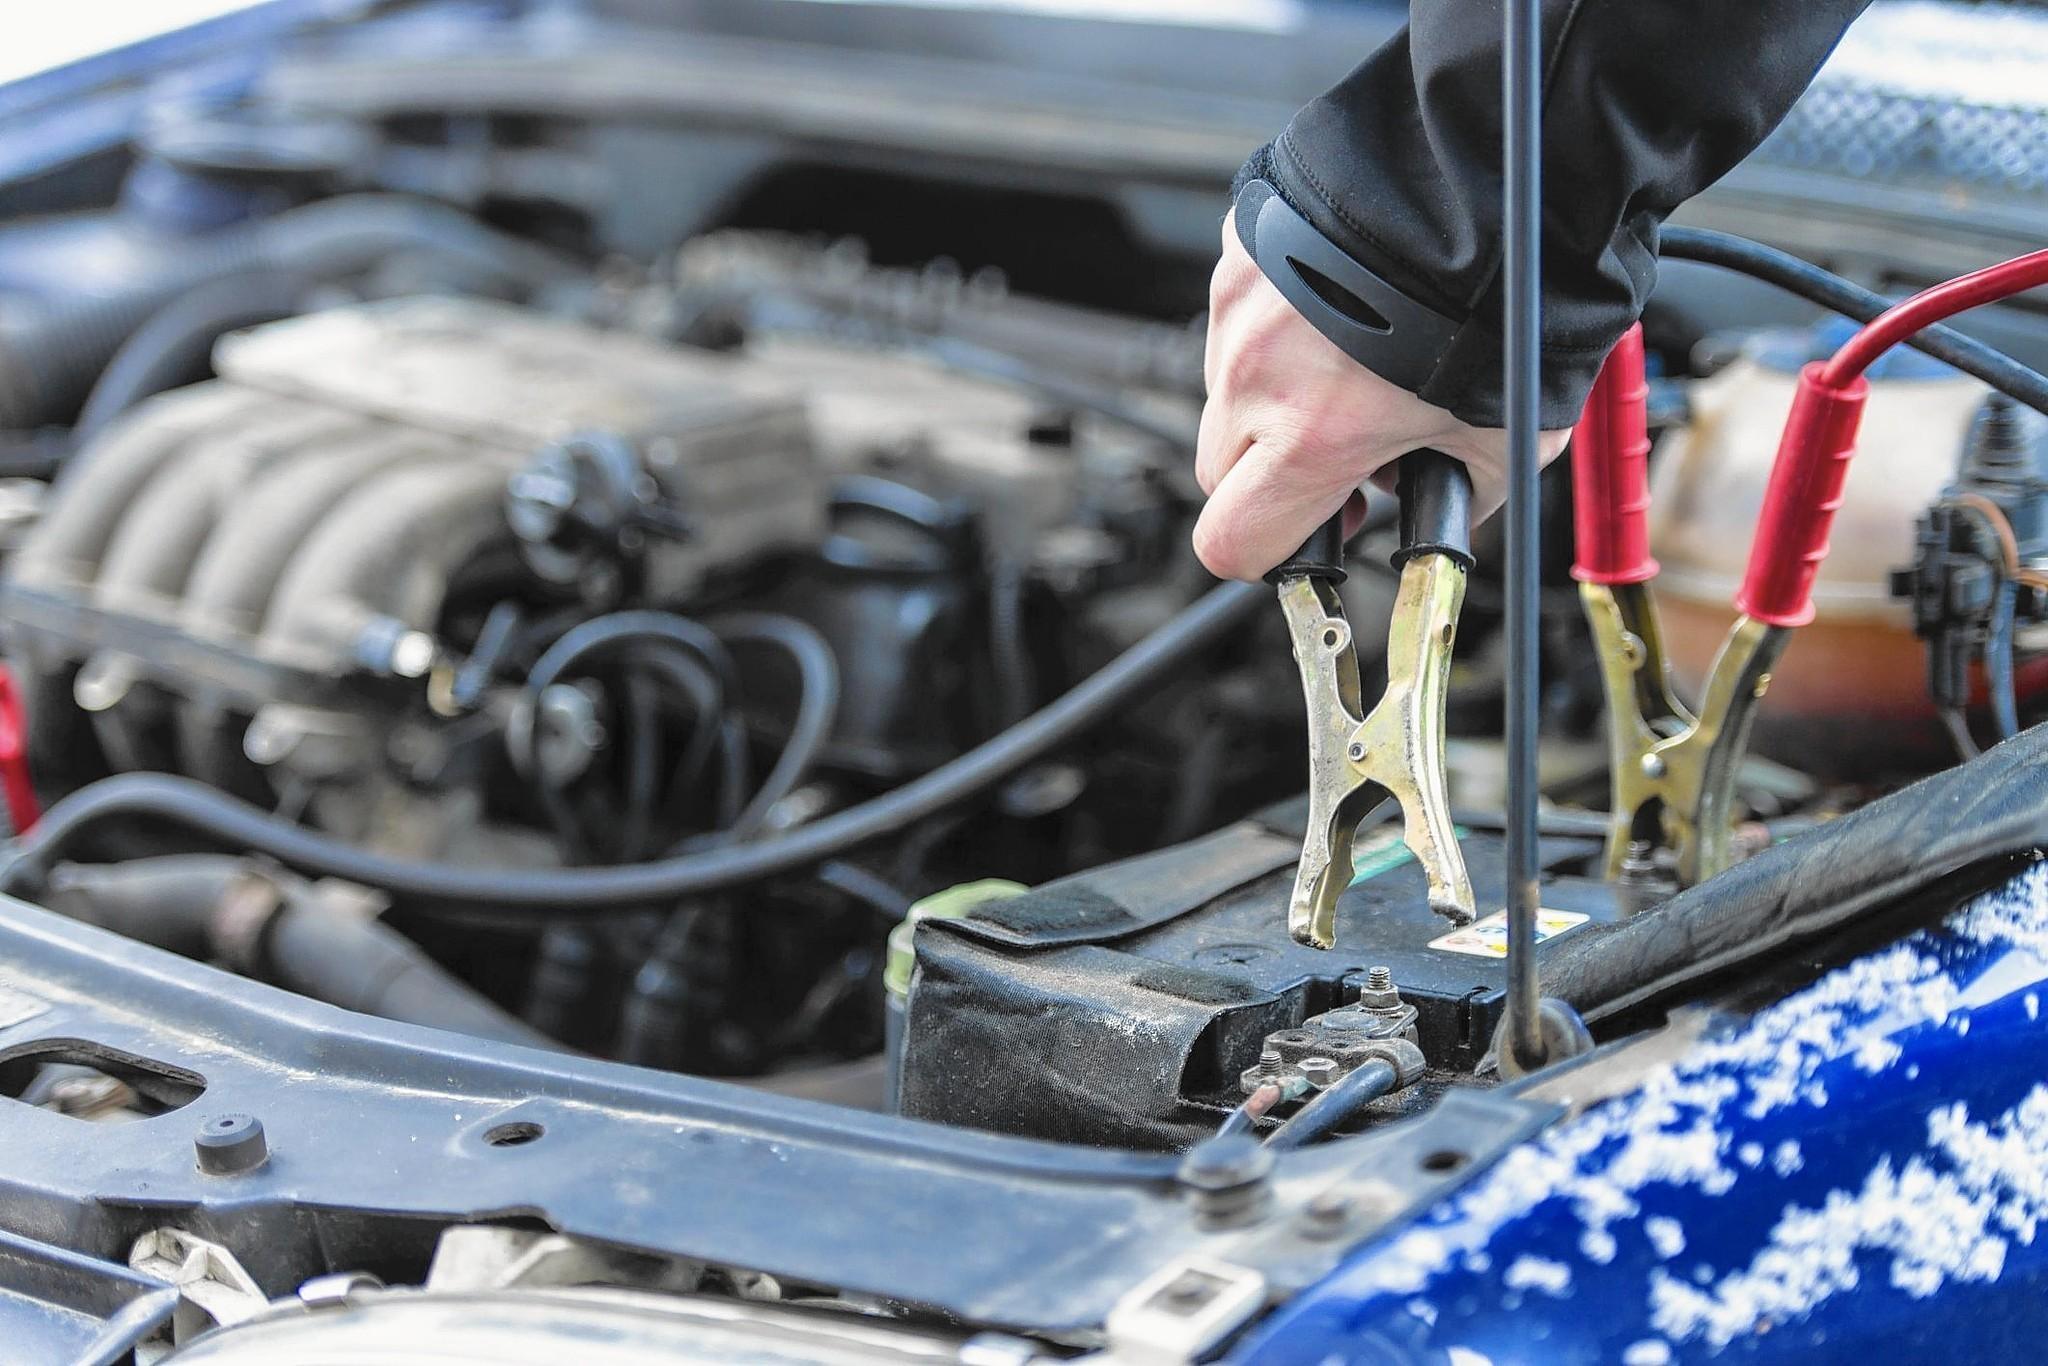 how to connect cables to car battery